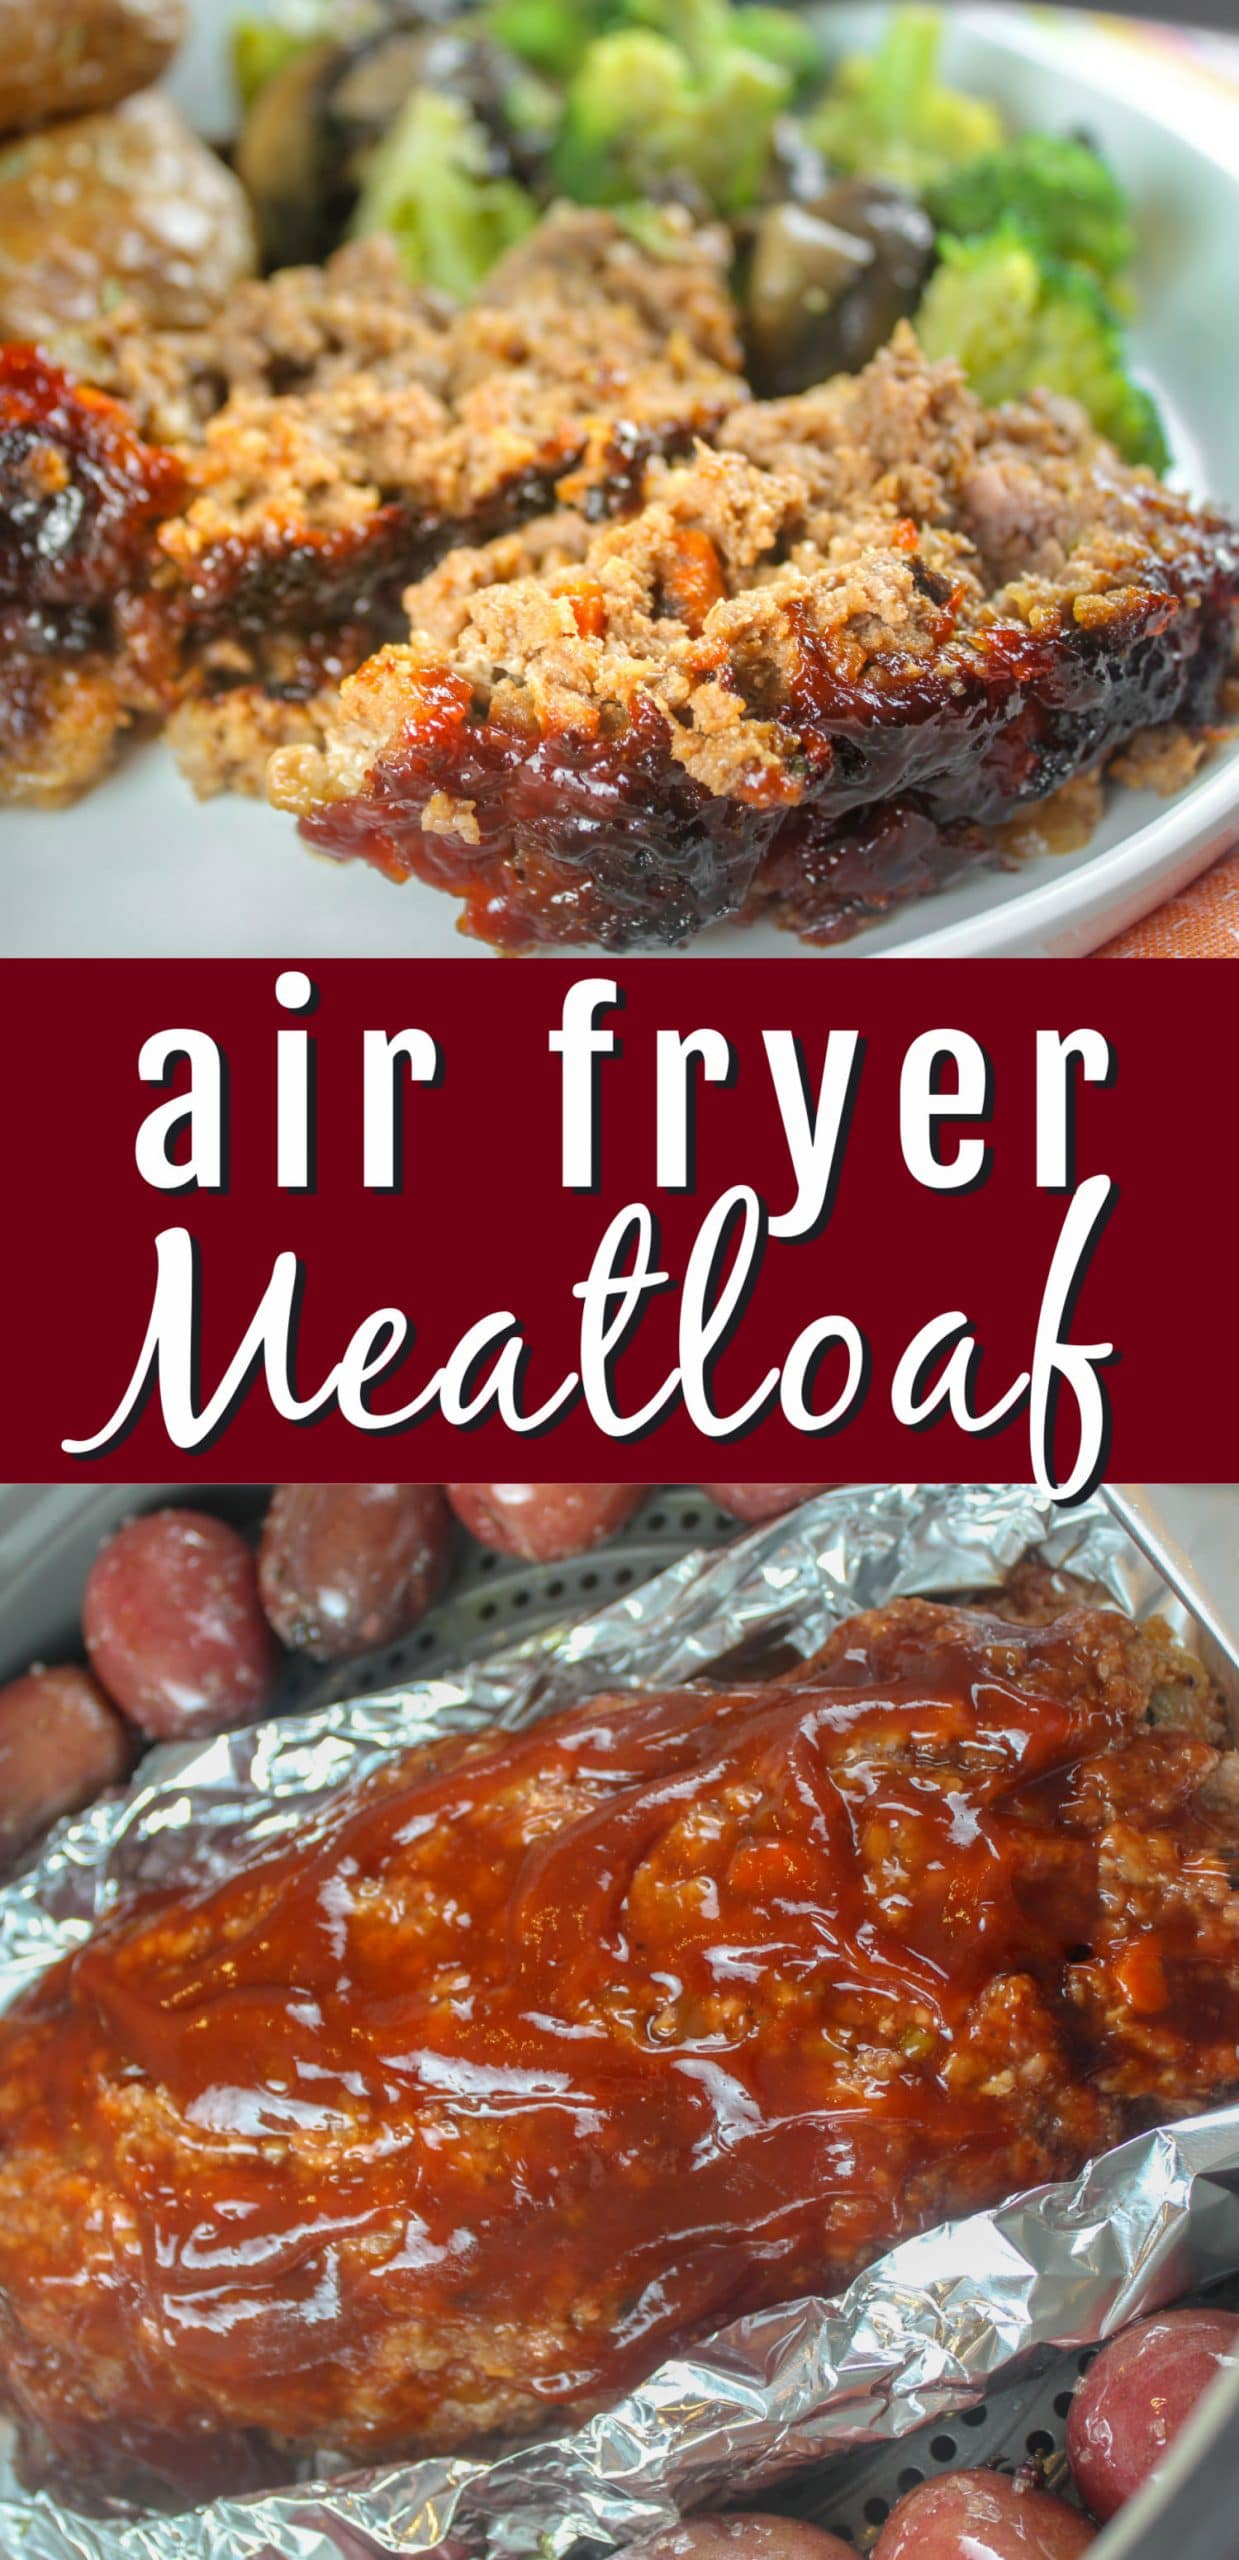 One of my favorite dinners has always been meatloaf - I couldn't have it for years because my ex was allergic to eggs. But now - meatloaf and I are friends again and this air fryer meatloaf will be on your menu too!  via @foodhussy